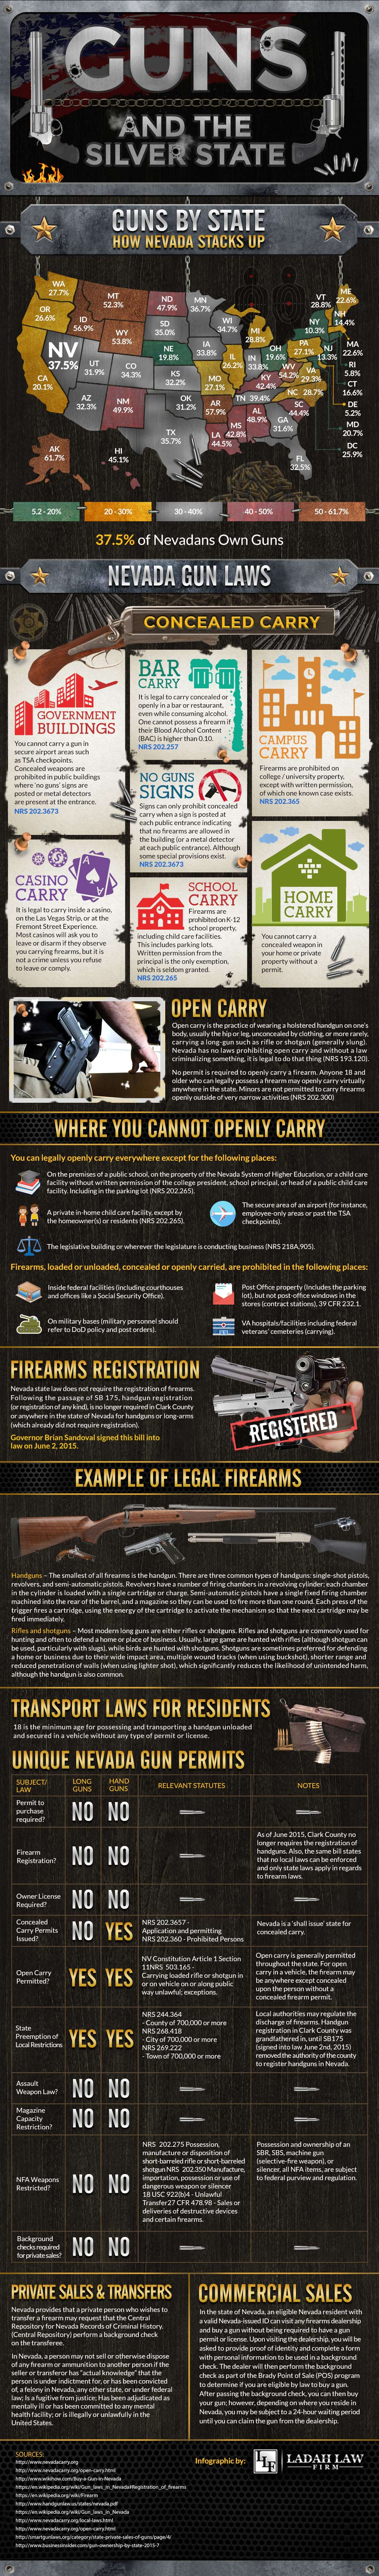 Nevada Gun Laws and Gun Ownership By State